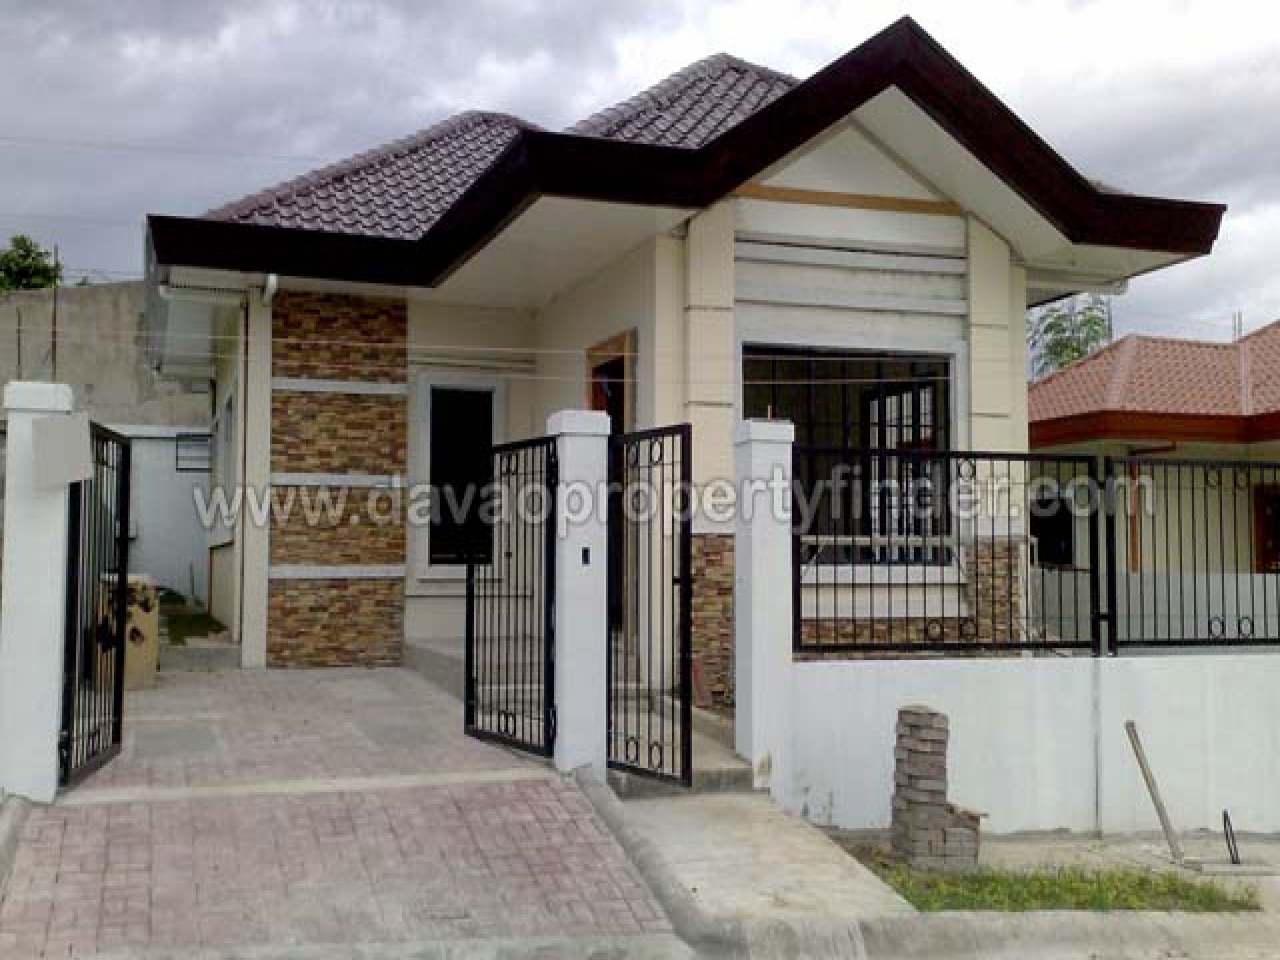 Bungalow Type House Philippines Houses Sale Baguio Philippines Types Of Bungalow Houses